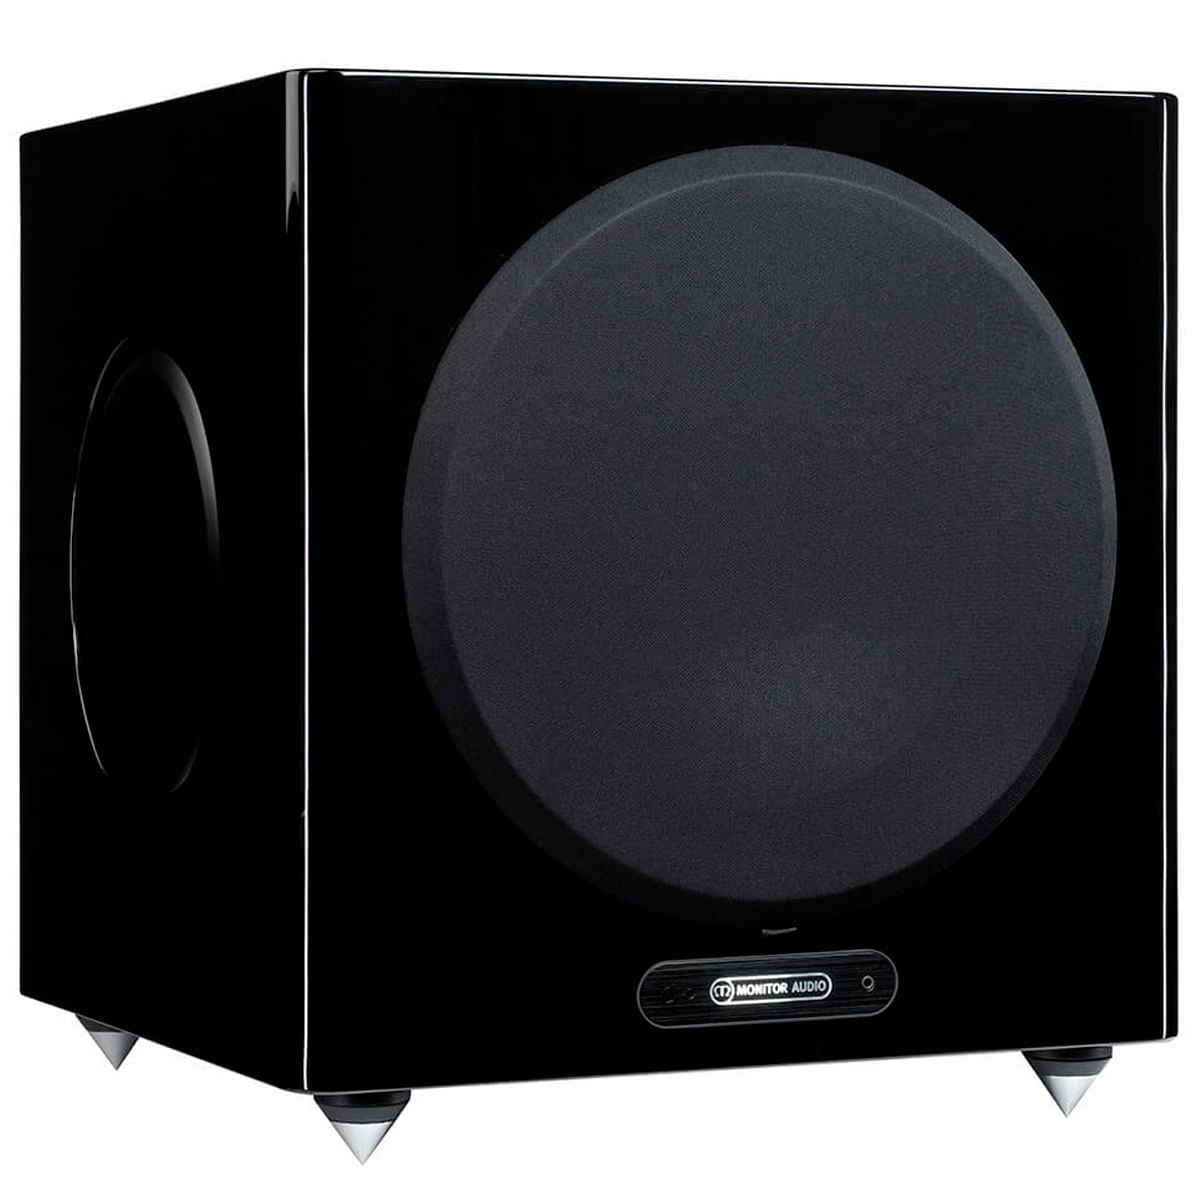 01-MONITOR-AUDIO-W12-PRETO-PERSP